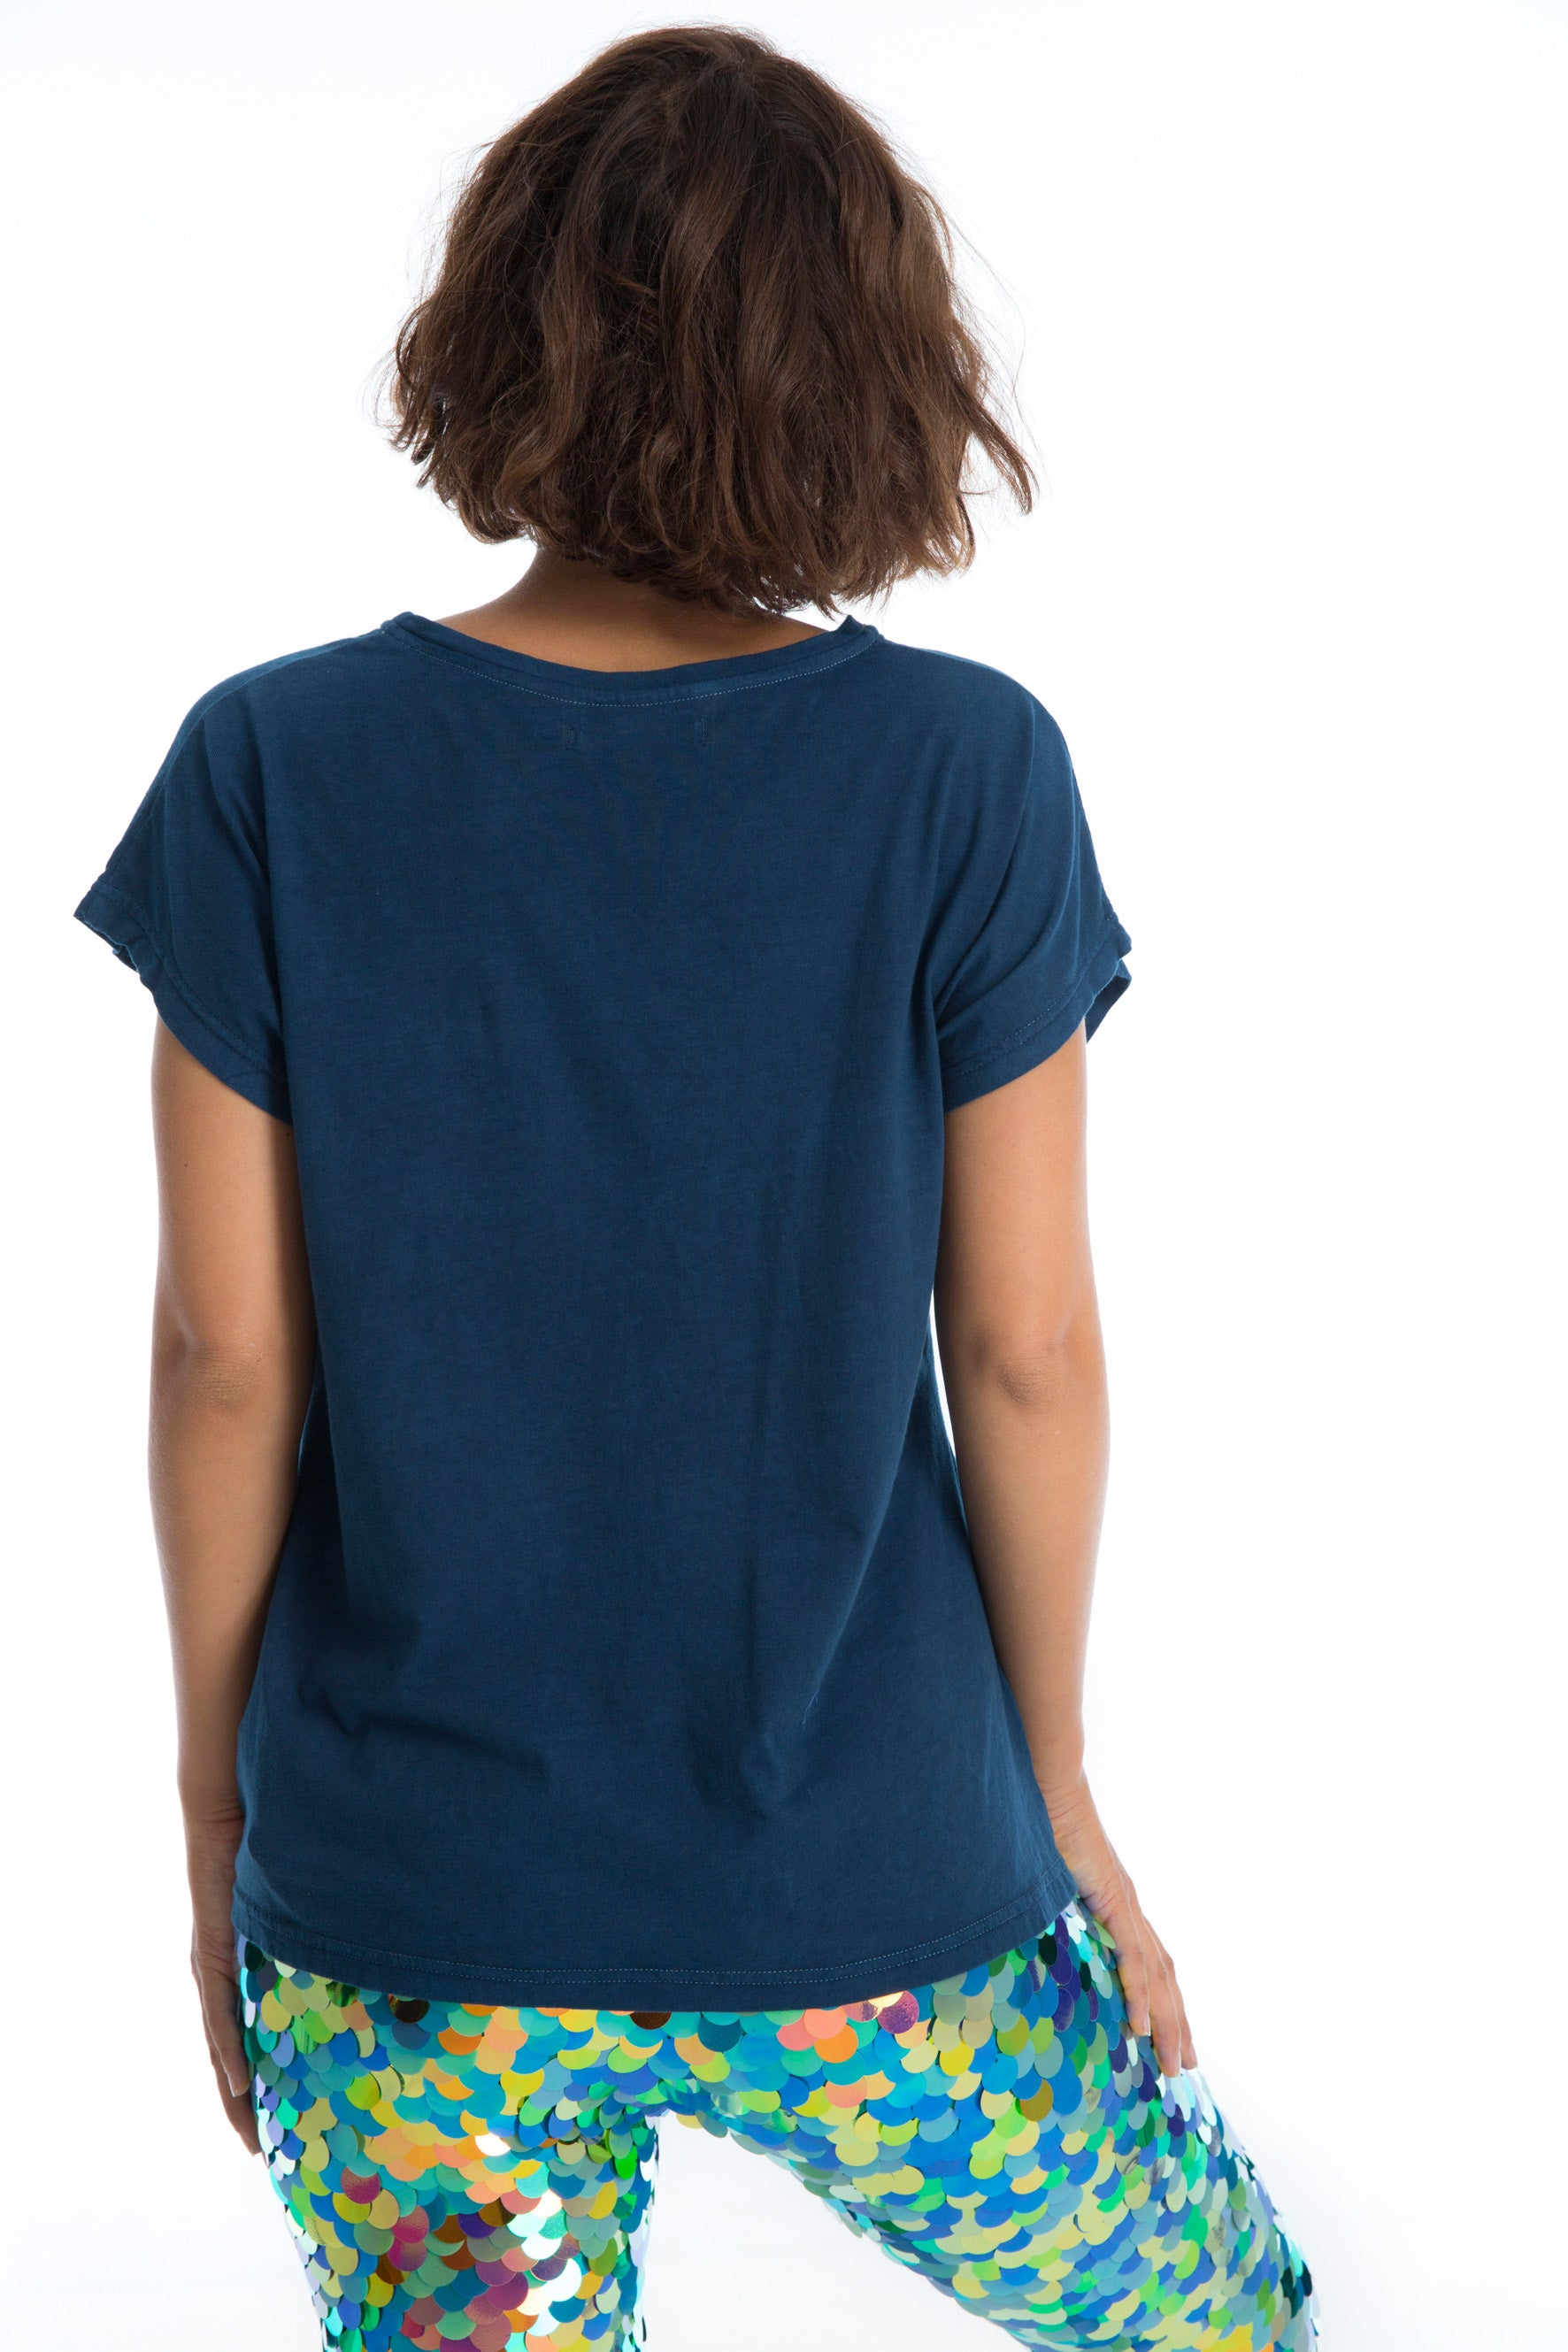 SAM T-SHIRT - NATURAL INDIGO